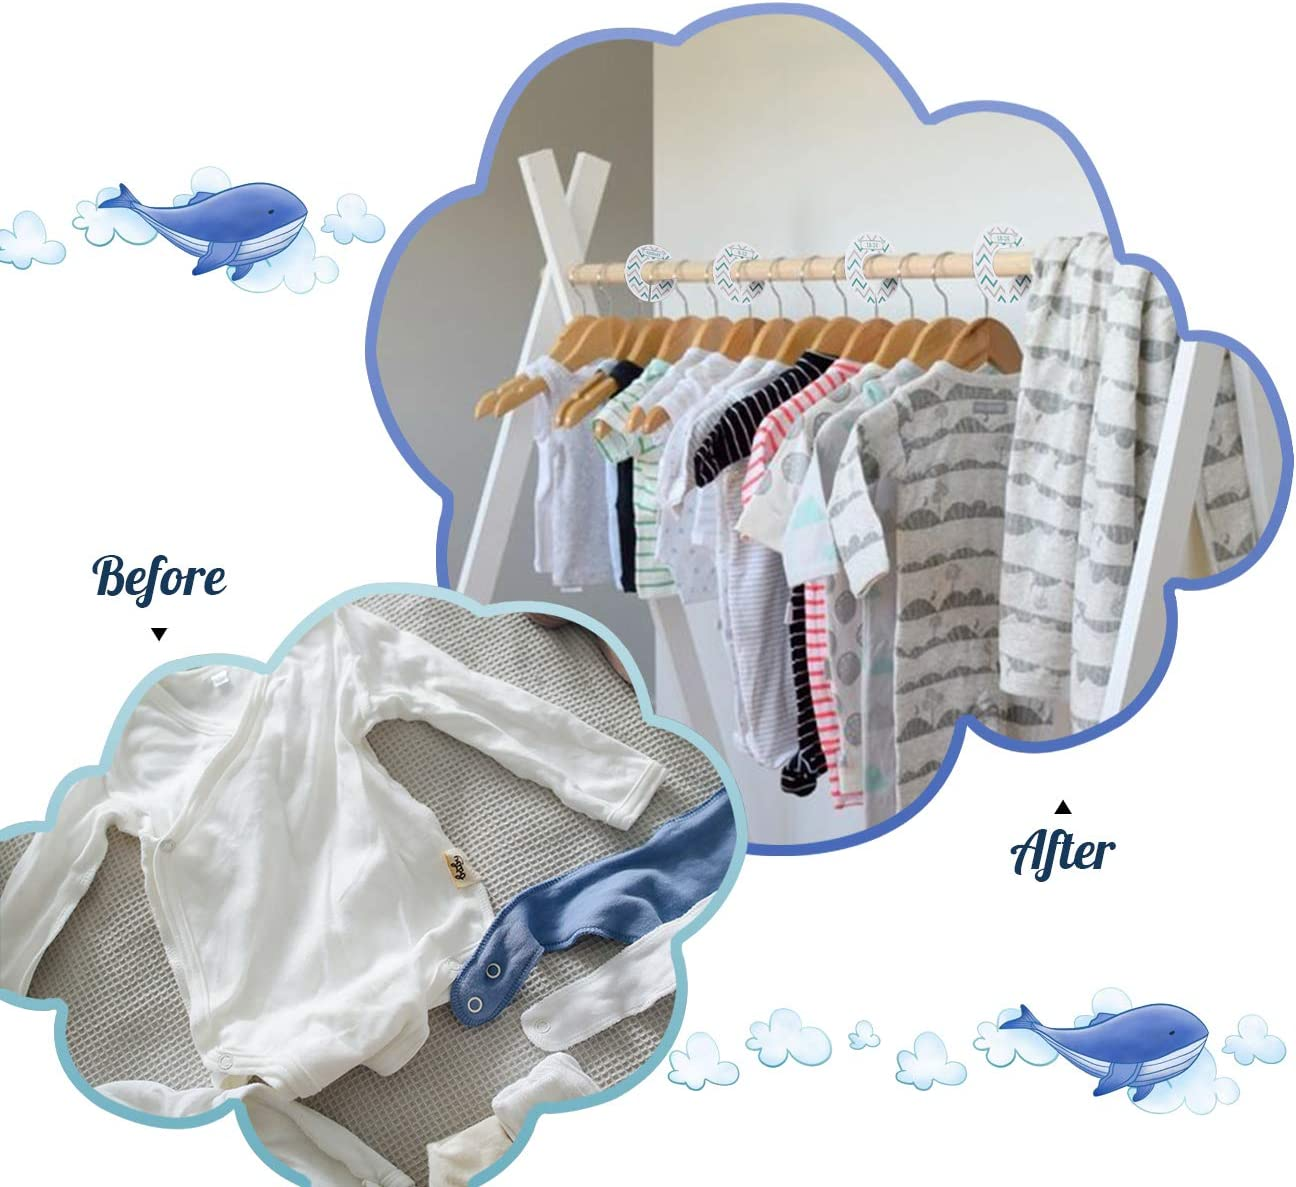 ilauke 8 Pack Nursery Wardrobe Dividers Plastic Baby Closet Size Dividers from Newborn Infant to Toddlers for Organize Babys Clothes(dot)